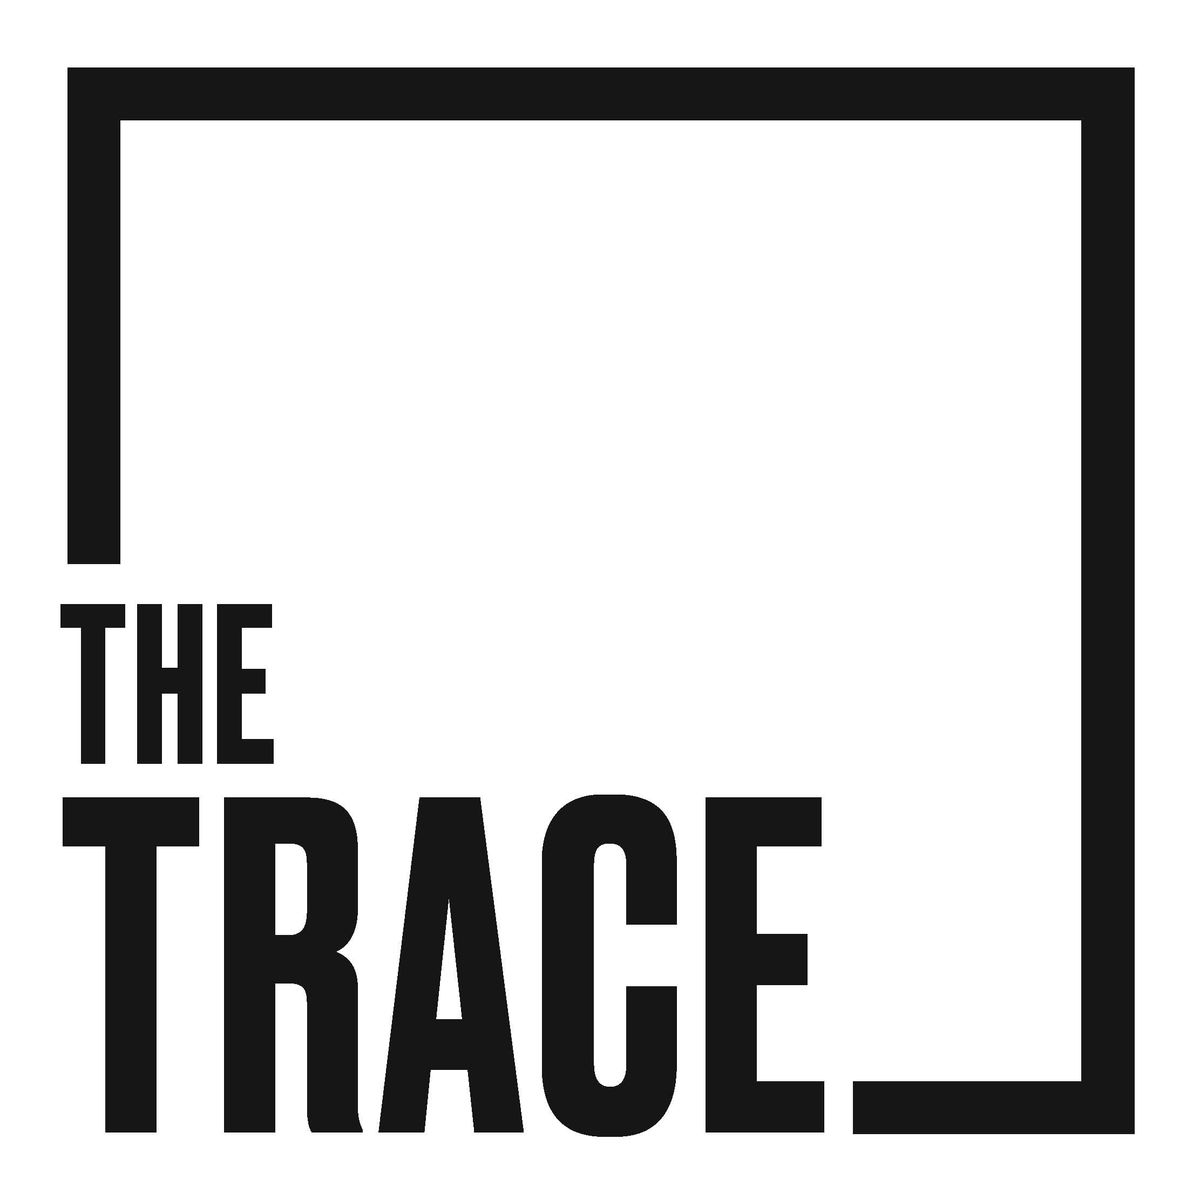 Lakeidra Chavis reports forThe Trace,a nonprofit news organization covering gun violence in America. This story is being published in partnership with the Sun-Times, Block Club Chicago and La Raza.